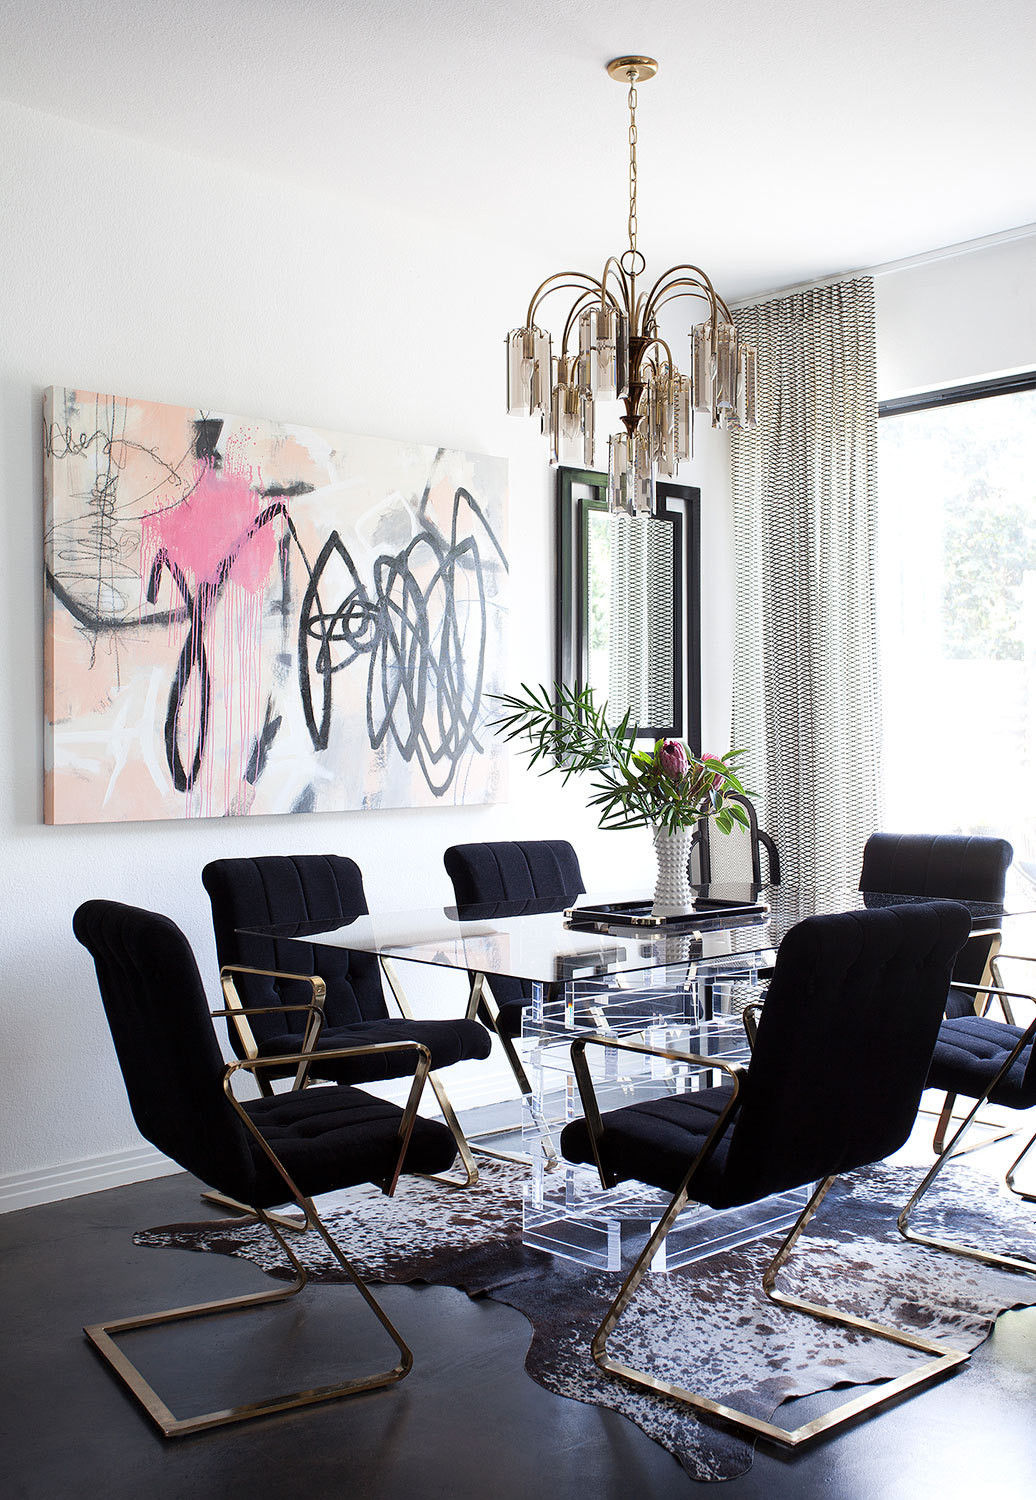 The set of Milo Baughman chairs is one of many standouts in the dining room, along with the graffiti-inspired Elisa Gomez painting and a smoked-glass chandelier found on Craigslist.